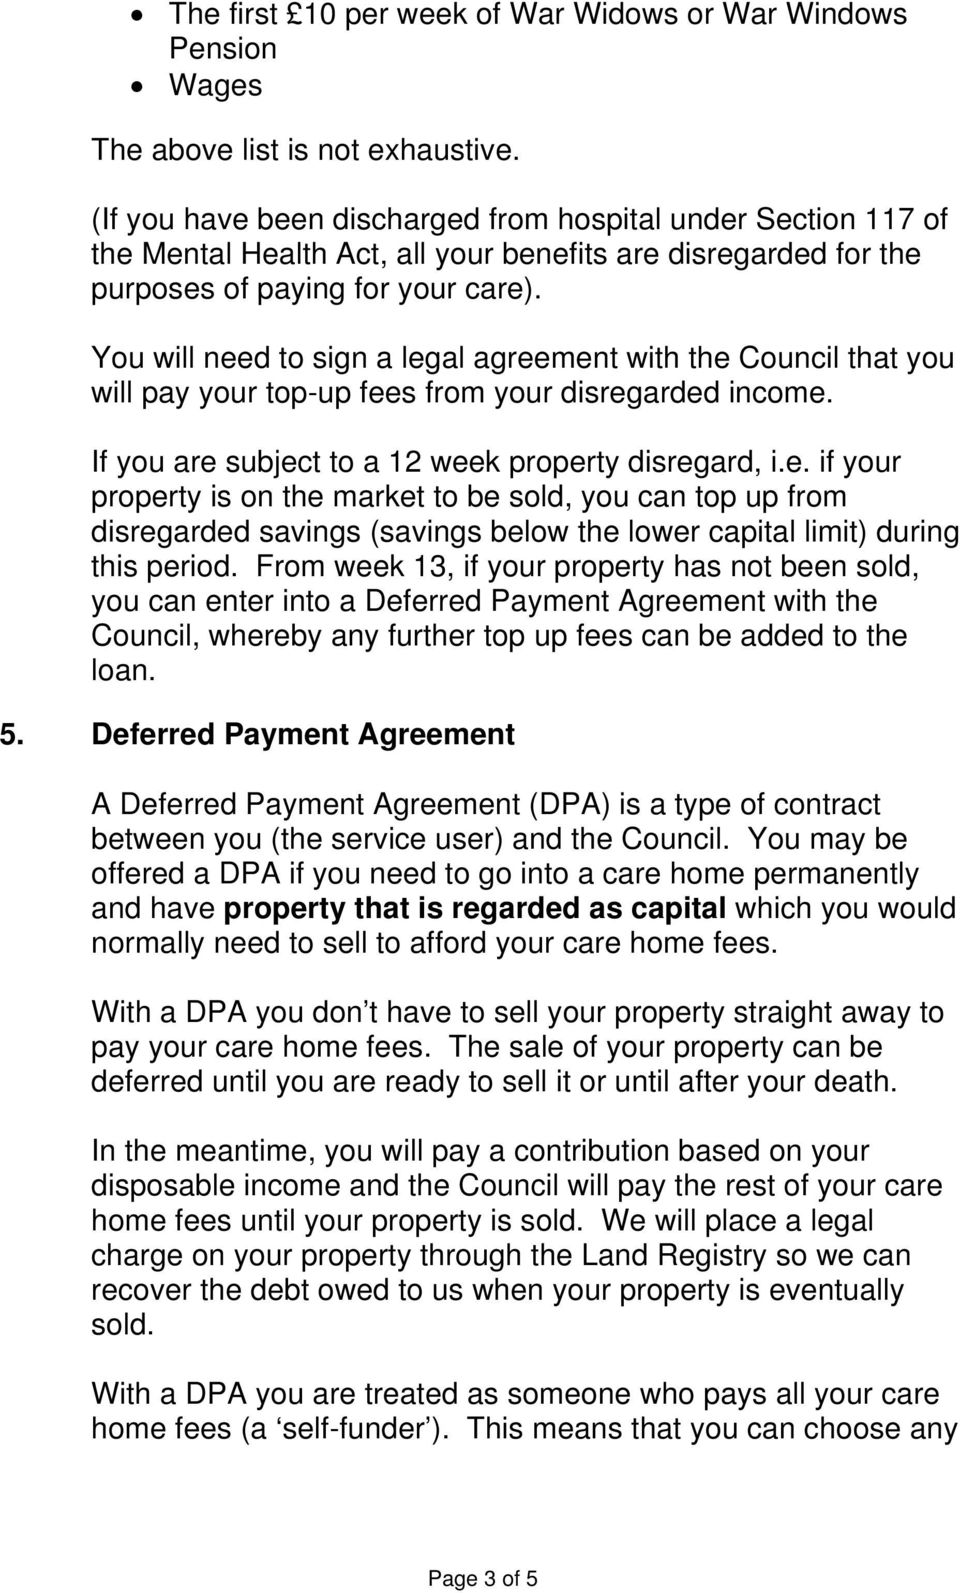 You will need to sign a legal agreement with the Council that you will pay your top-up fees from your disregarded income. If you are subject to a 12 week property disregard, i.e. if your property is on the market to be sold, you can top up from disregarded savings (savings below the lower capital limit) during this period.